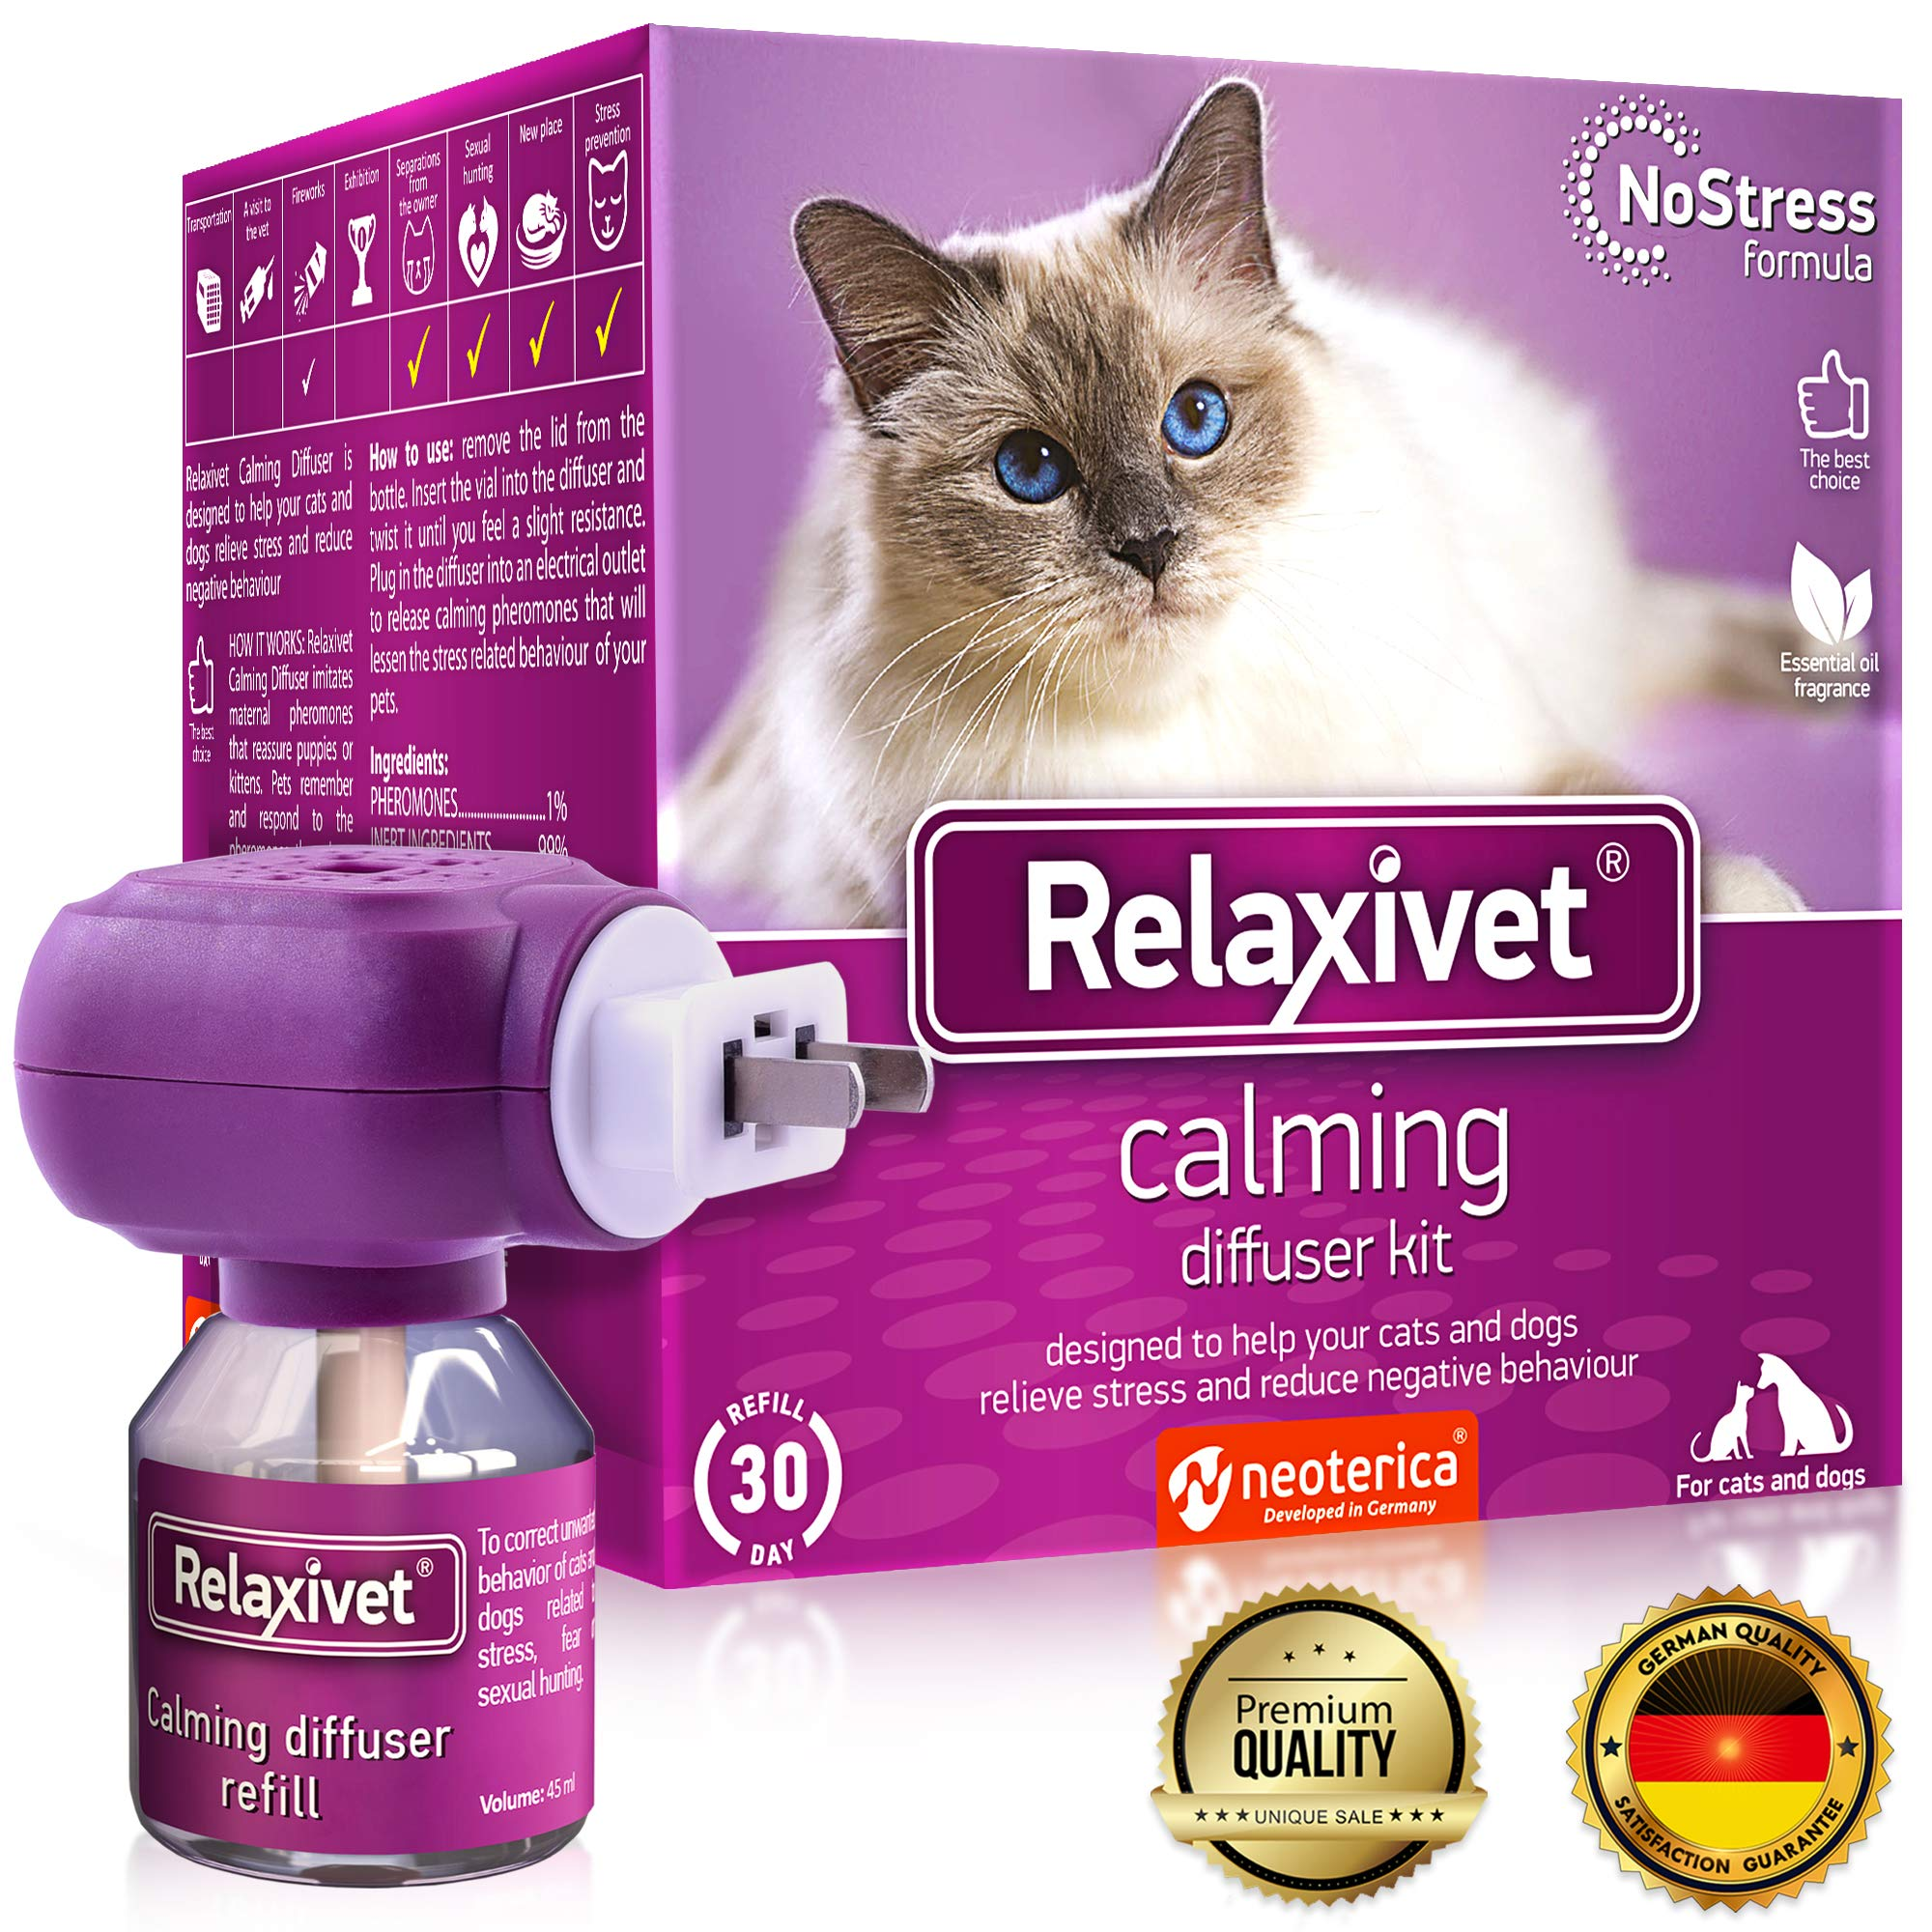 Relaxivet Natural Cat Calming Diffuser - Improved No-Stress Formula - Anti-Anxiety Treatment #1 for Cats and Dogs with a Long-Lasting Calming Effect